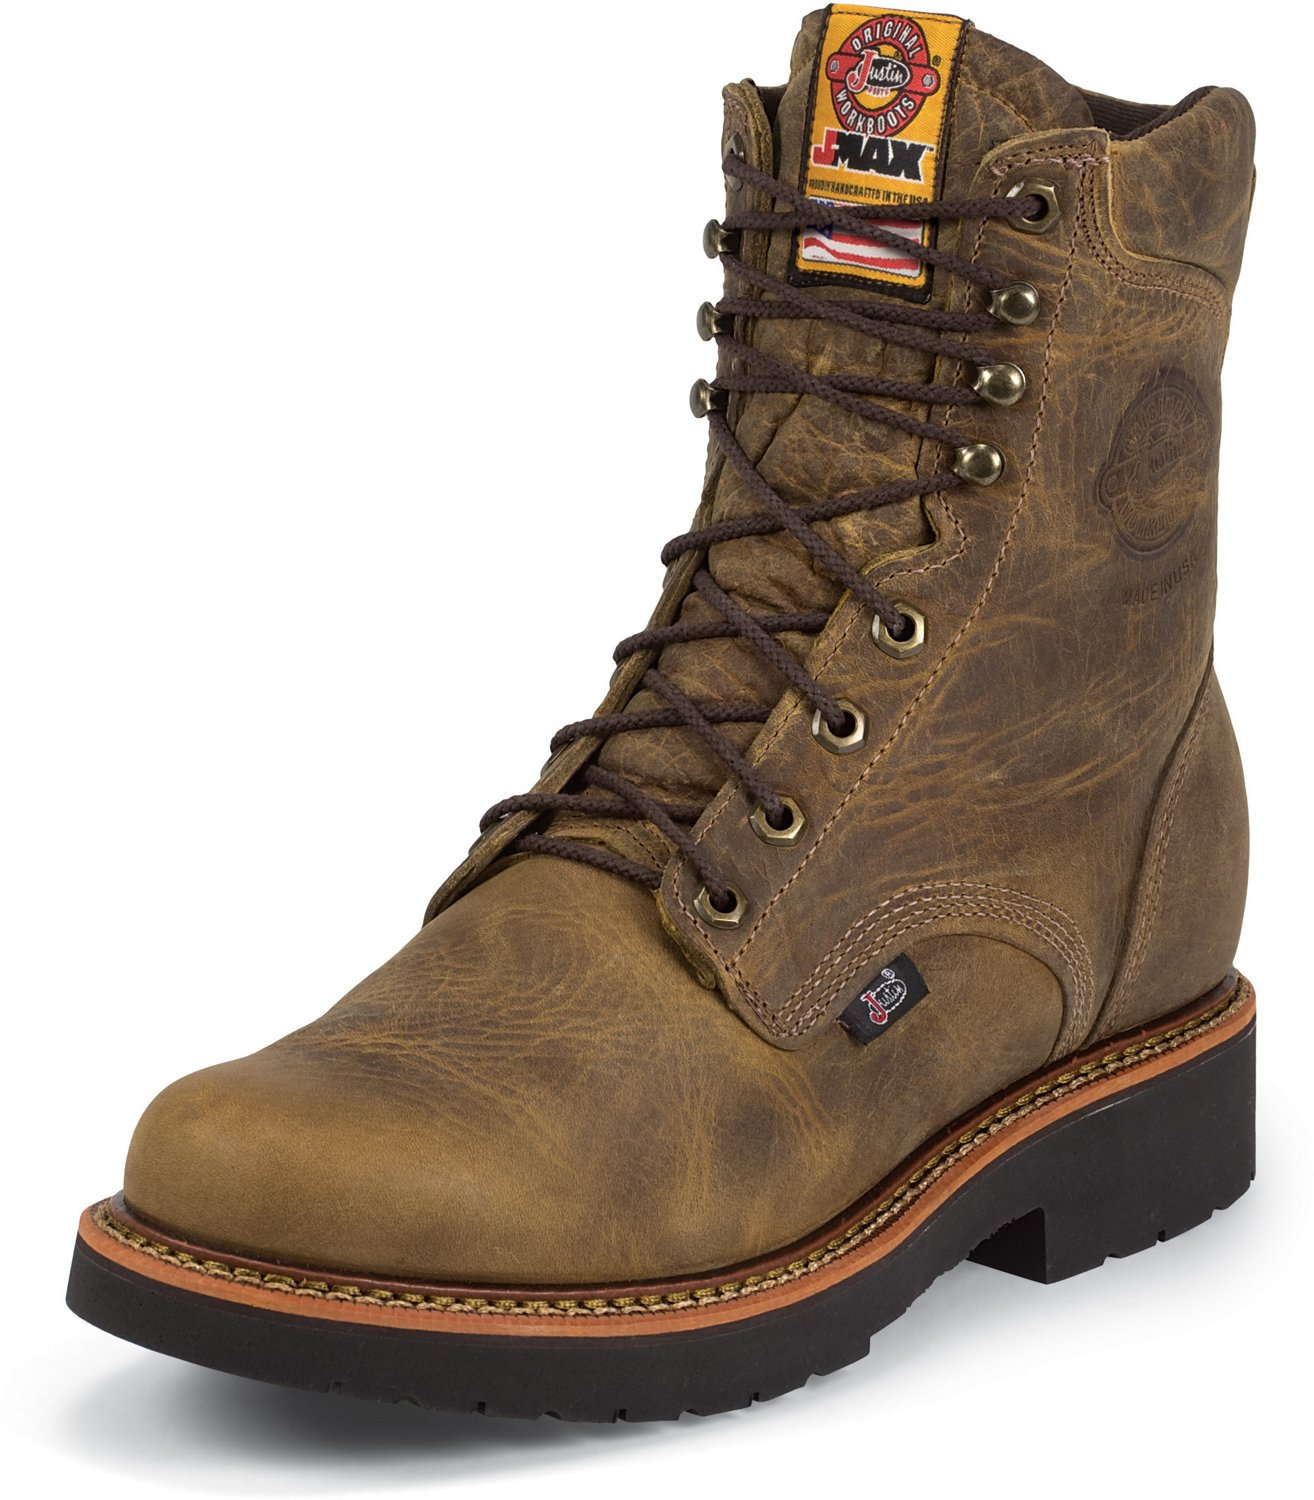 cf66686202e92 Display product reviews for Justin Men's Rugged Gaucho EH Steel-Toe Lace Up  Work Boots